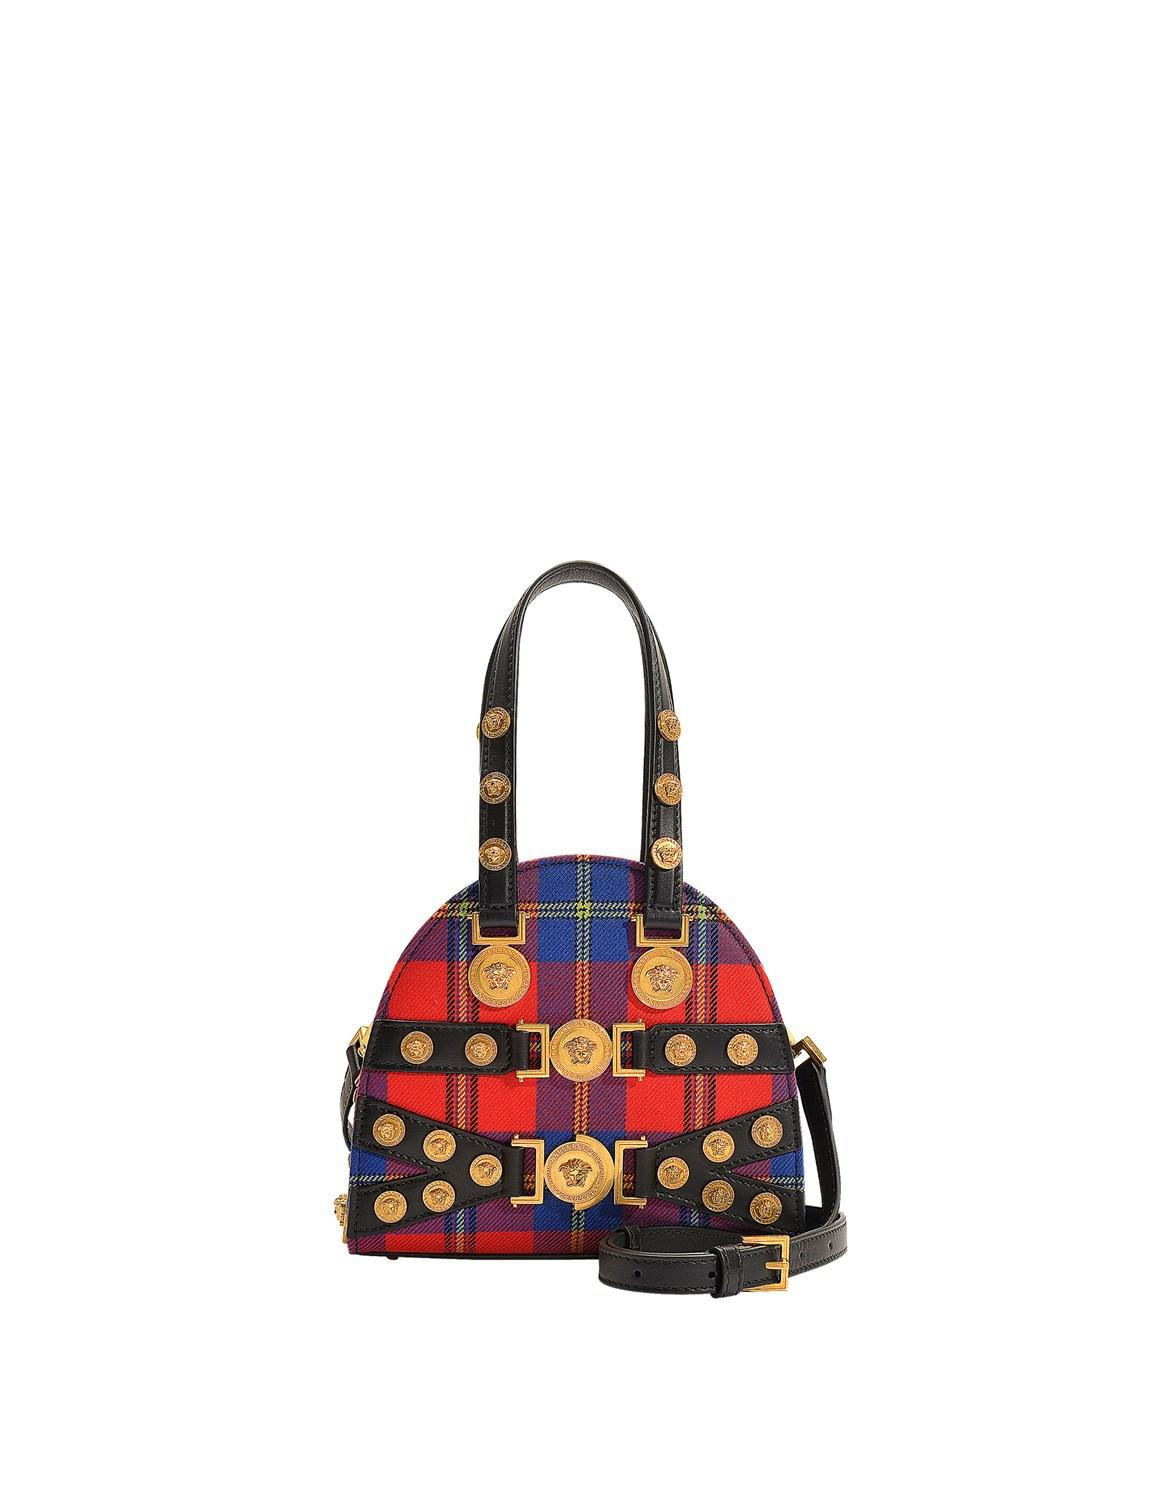 Lyst - Versace Tribute Small Hand Carry Bag In Multicolor Wool in Red 9e76c90e7a